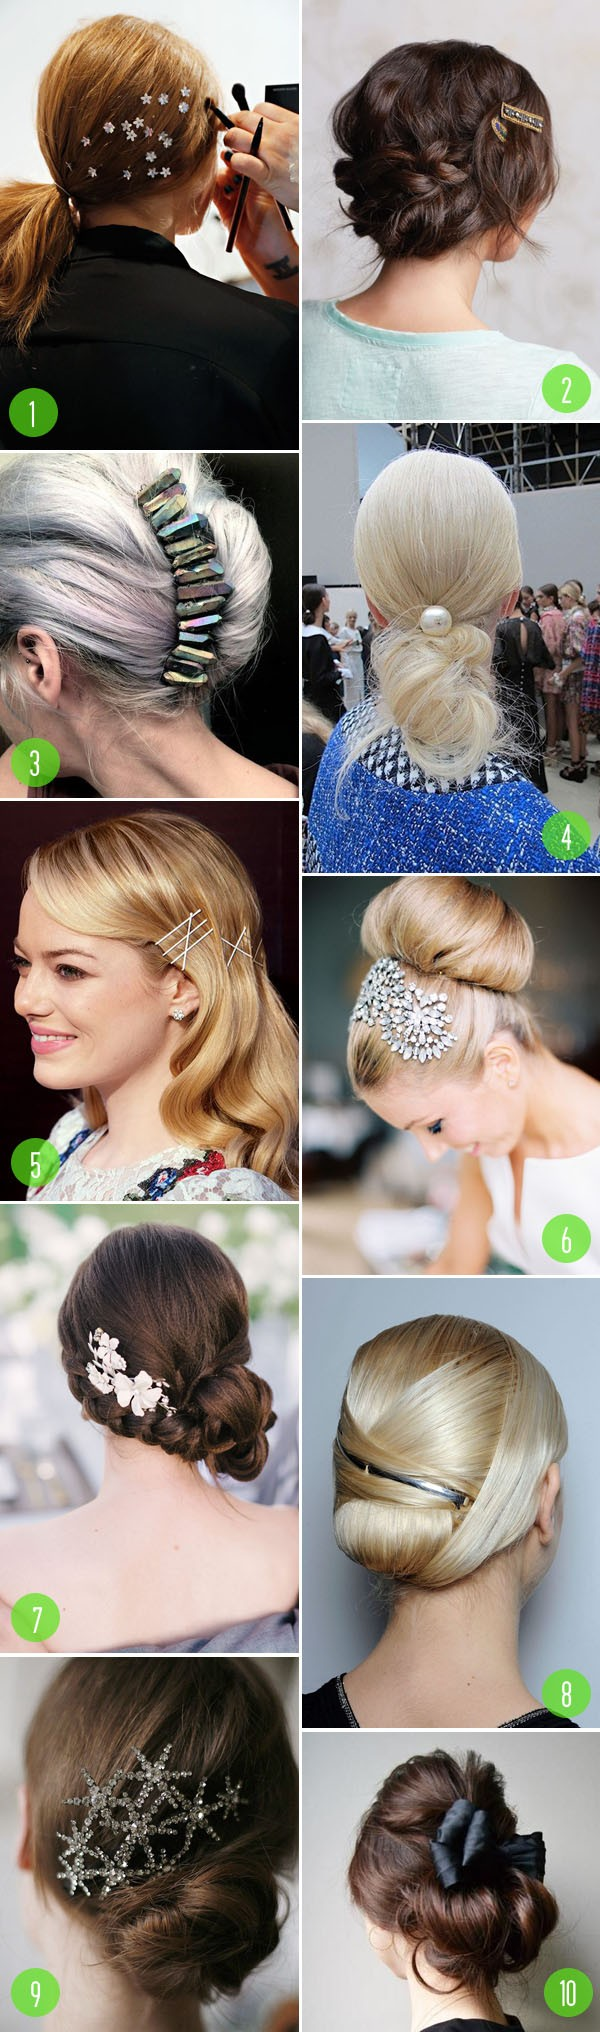 top 10: hair - accessorized